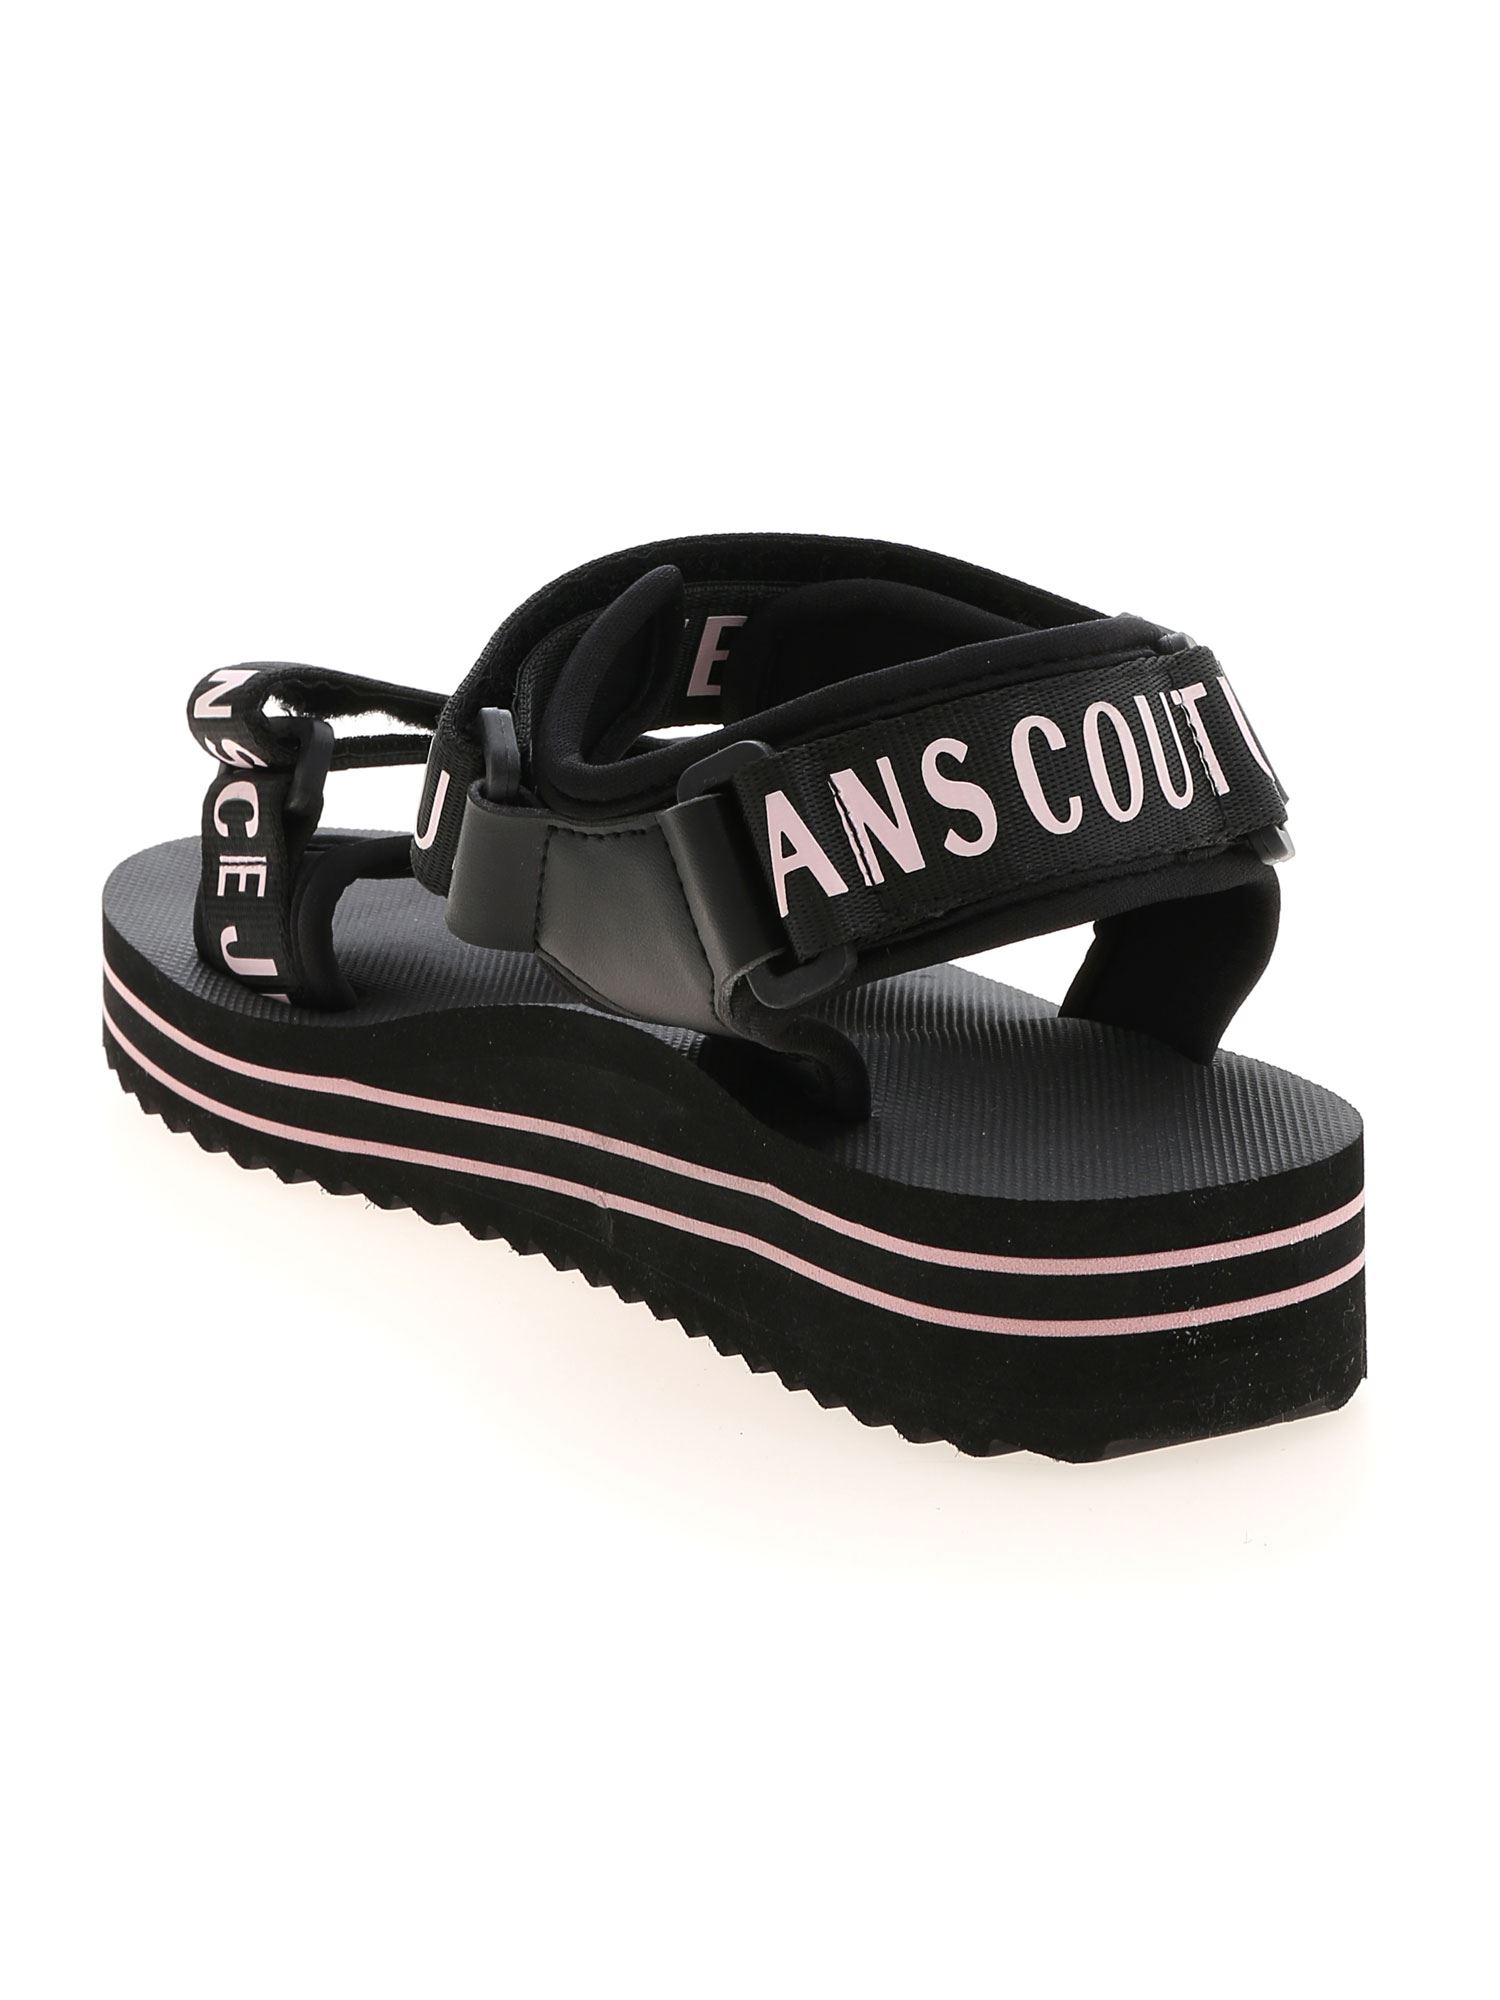 VERSACE JEANS COUTURE Sandals BRANDED VELCRO SANDALS IN BLACK